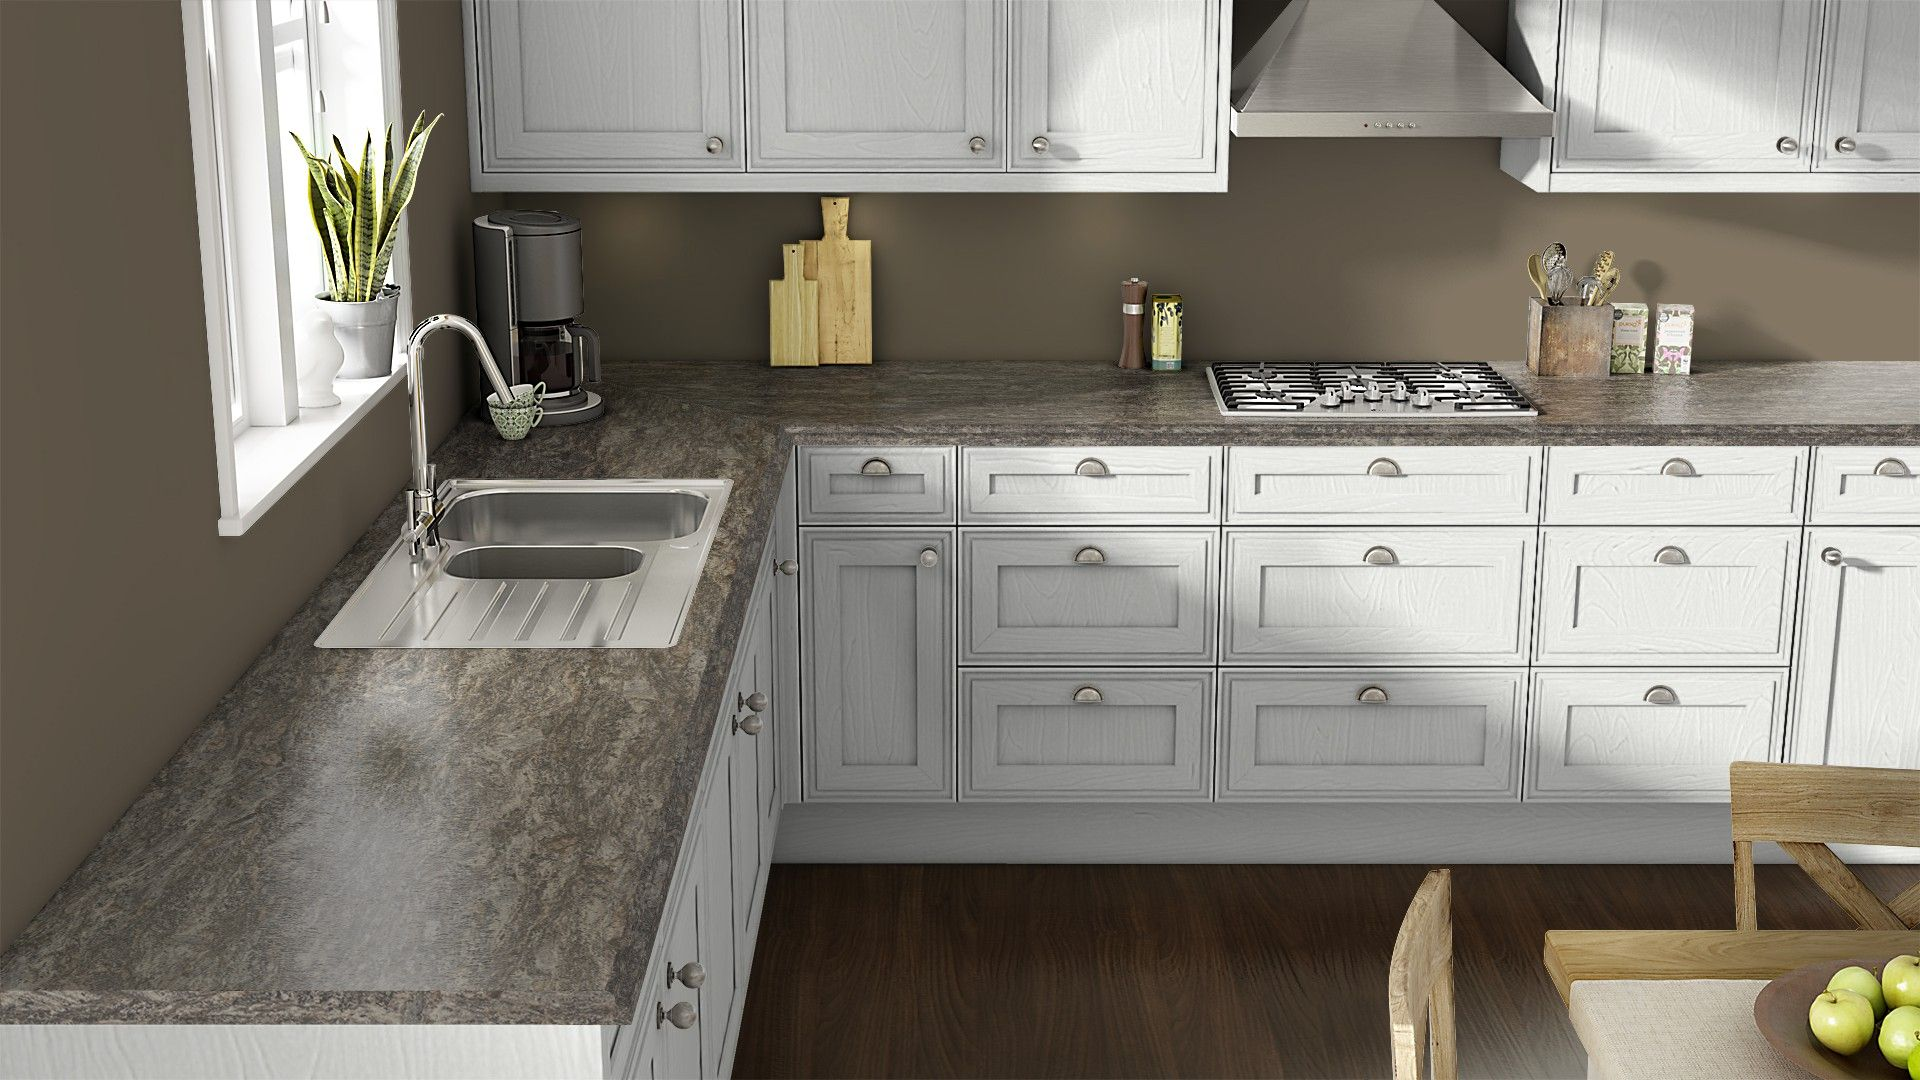 Cosmos Granite HD Laminate Get inspired for your kitchen renovation